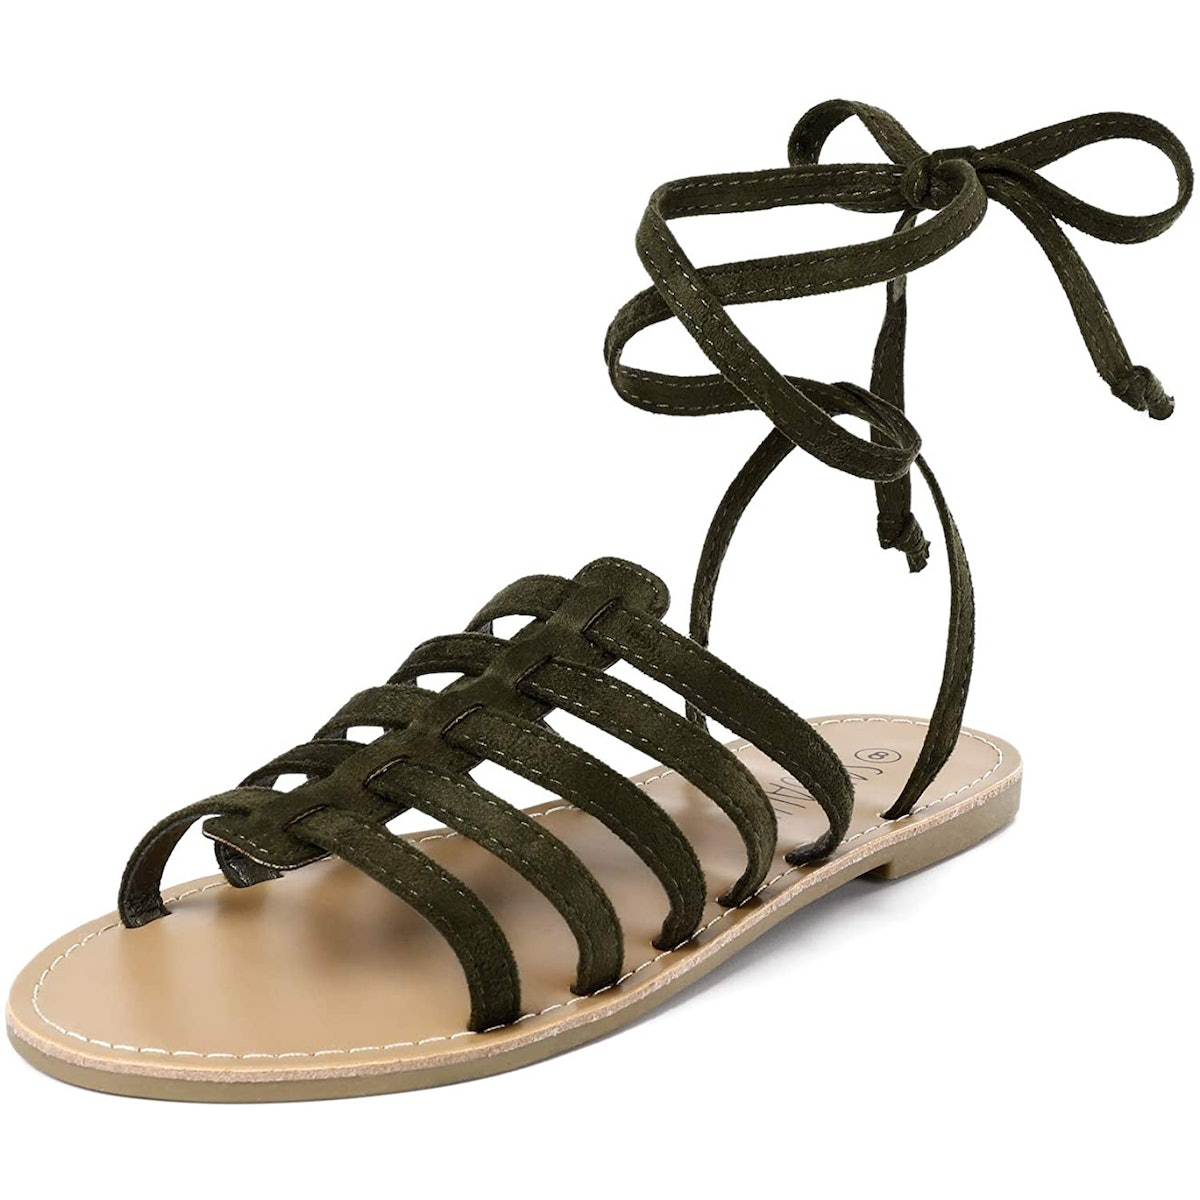 SANDALUP Lace-Up Flat Gladiator Sandals